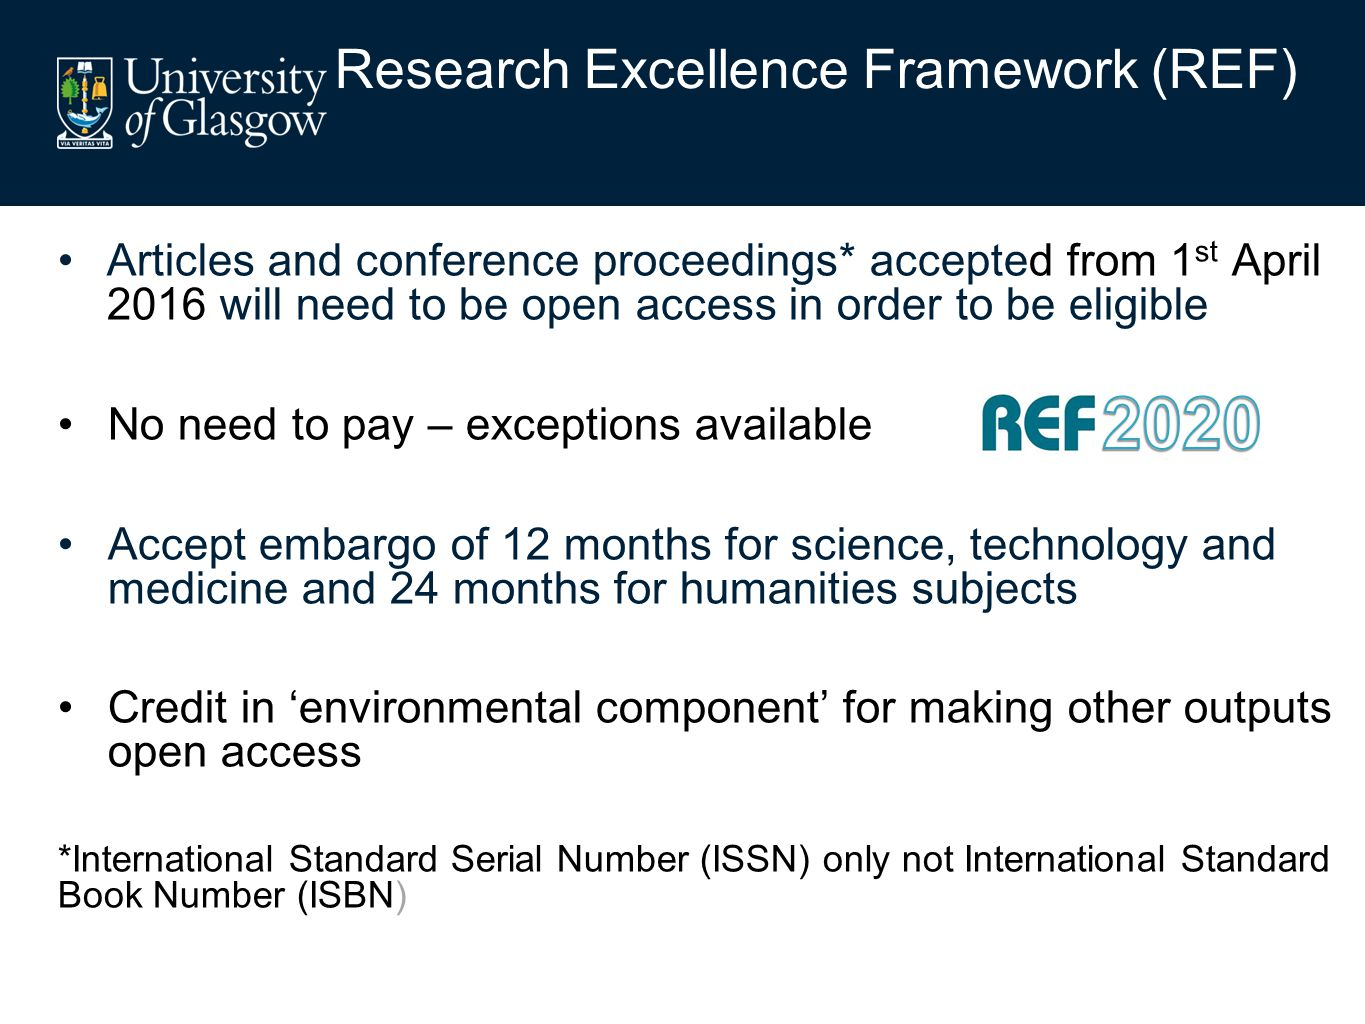 Research Excellence Framework (REF) Articles and conference proceedings* accepted from 1 st April 2016 will need to be open access in order to be eligible No need to pay – exceptions available Accept embargo of 12 months for science, technology and medicine and 24 months for humanities subjects Credit in 'environmental component' for making other outputs open access *International Standard Serial Number (ISSN) only not International Standard Book Number (ISBN)